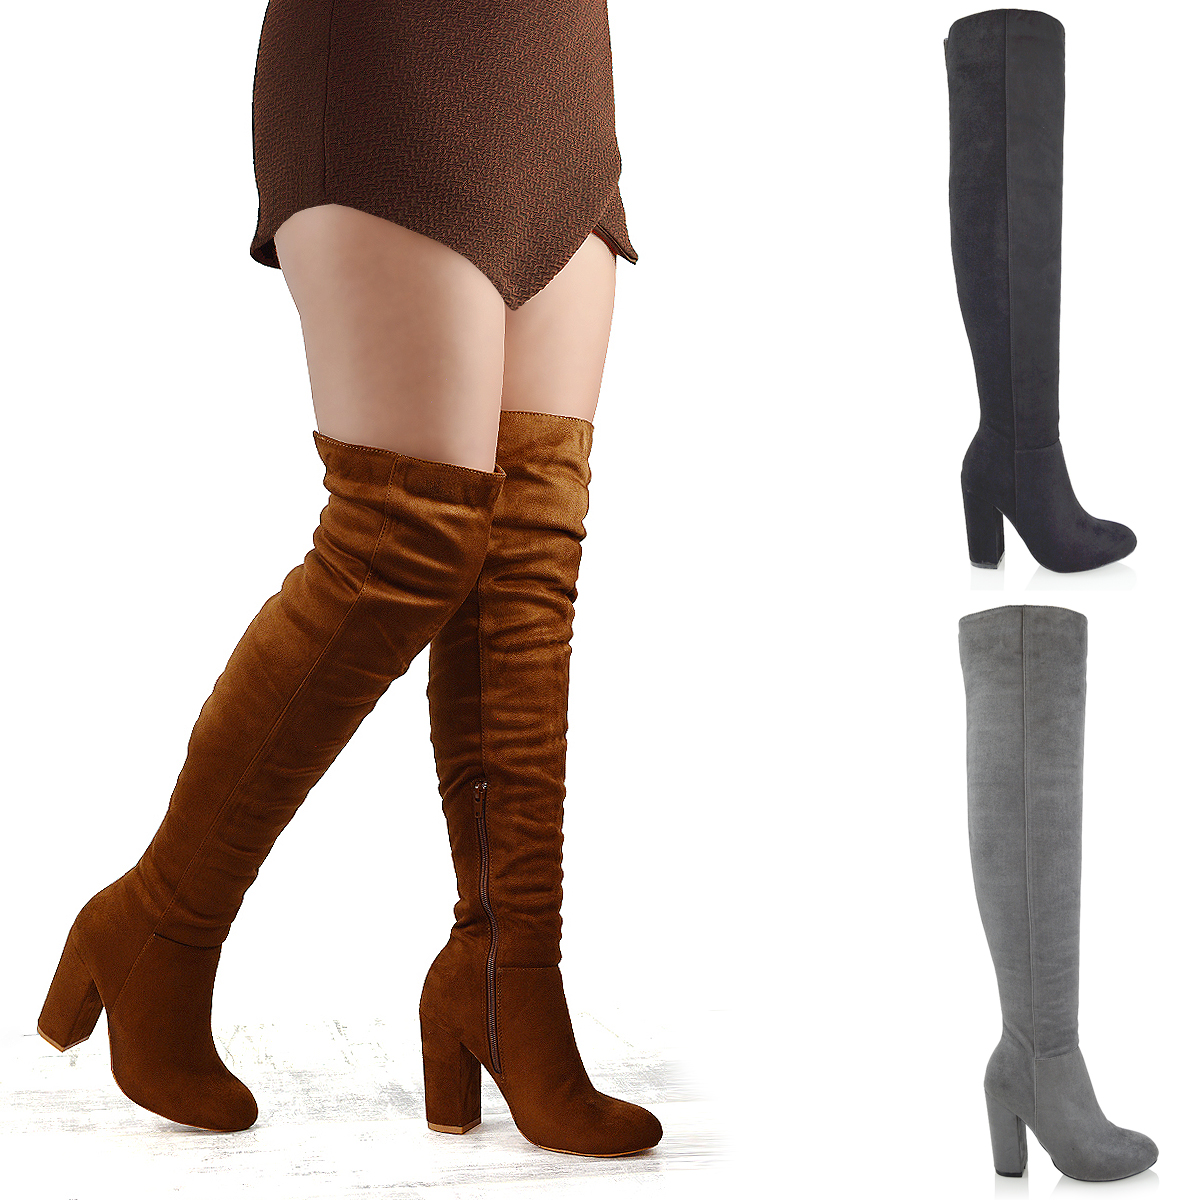 08473ab1522 Details about Womens Over The Knee High Block Heel Ladies Long Cut Out  Thigh High Boots 3-8